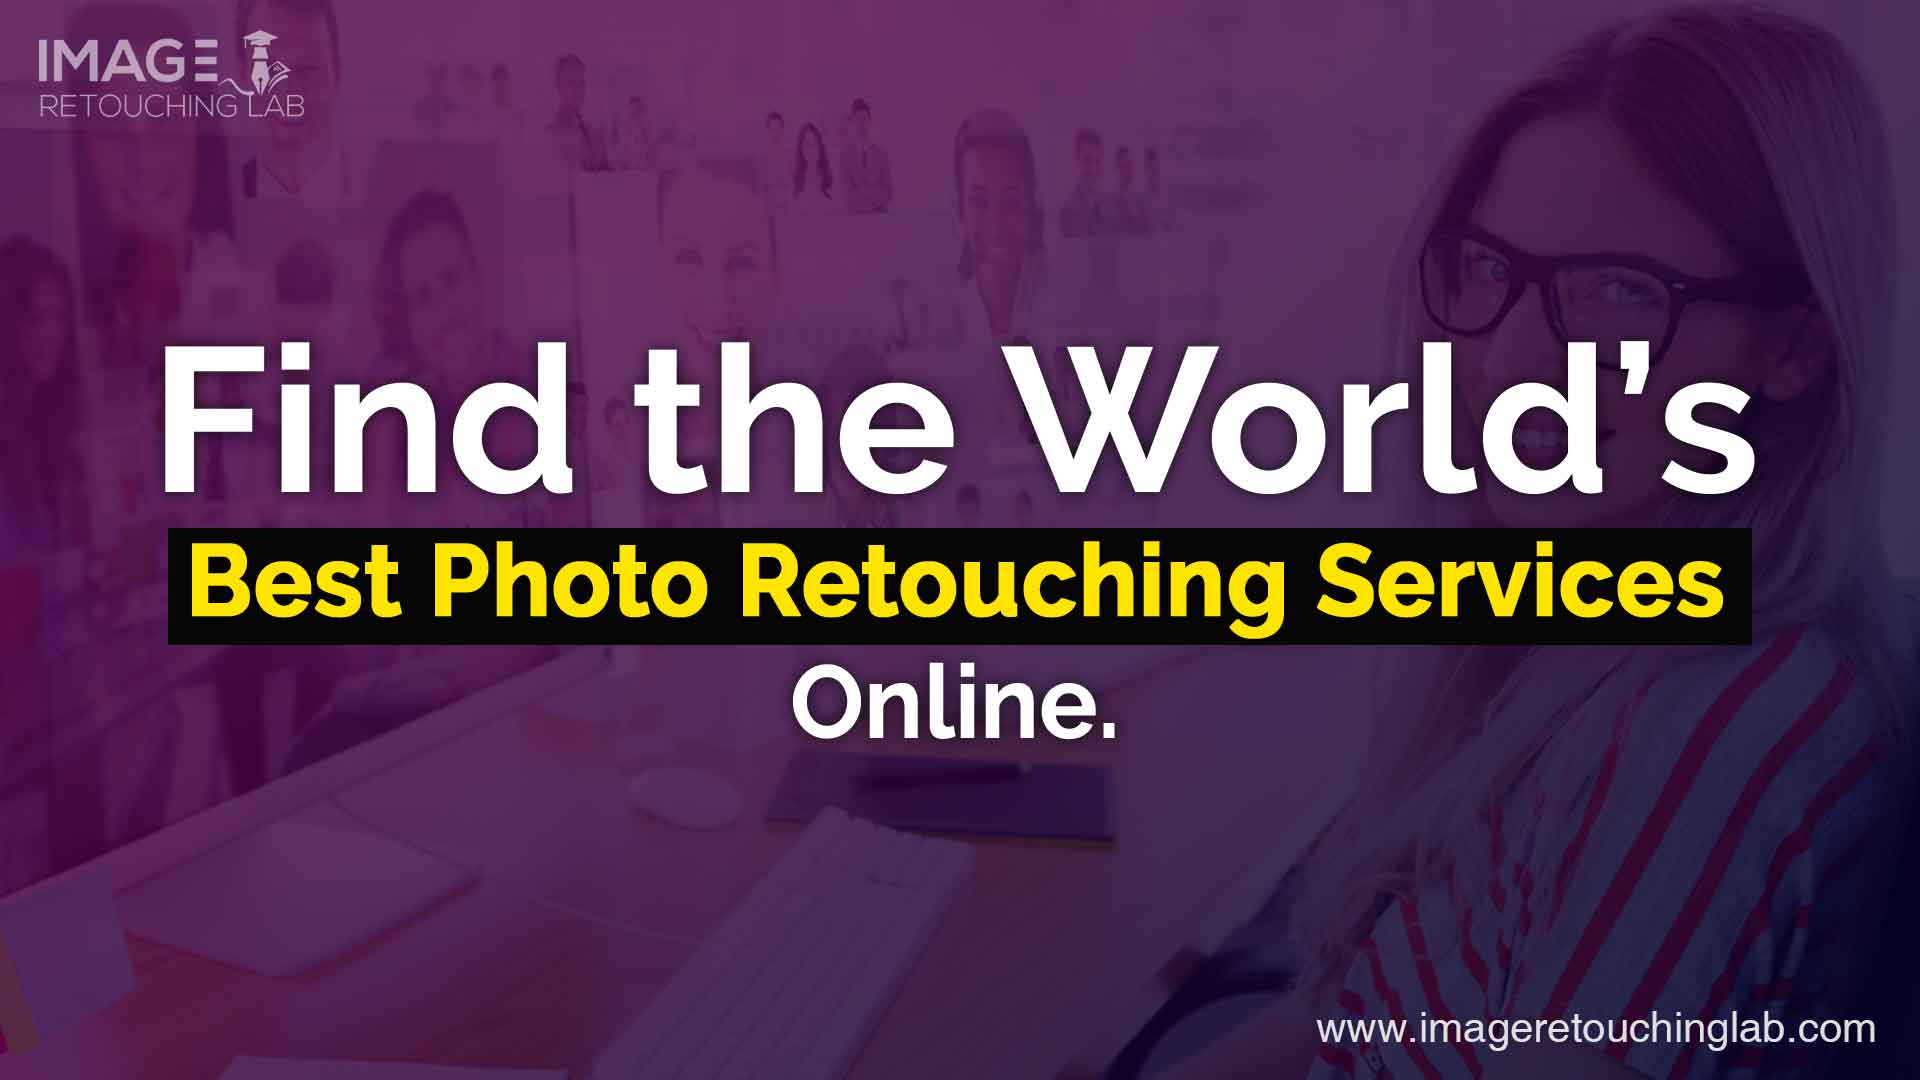 Find the World's Best Photo Retouching Services Online